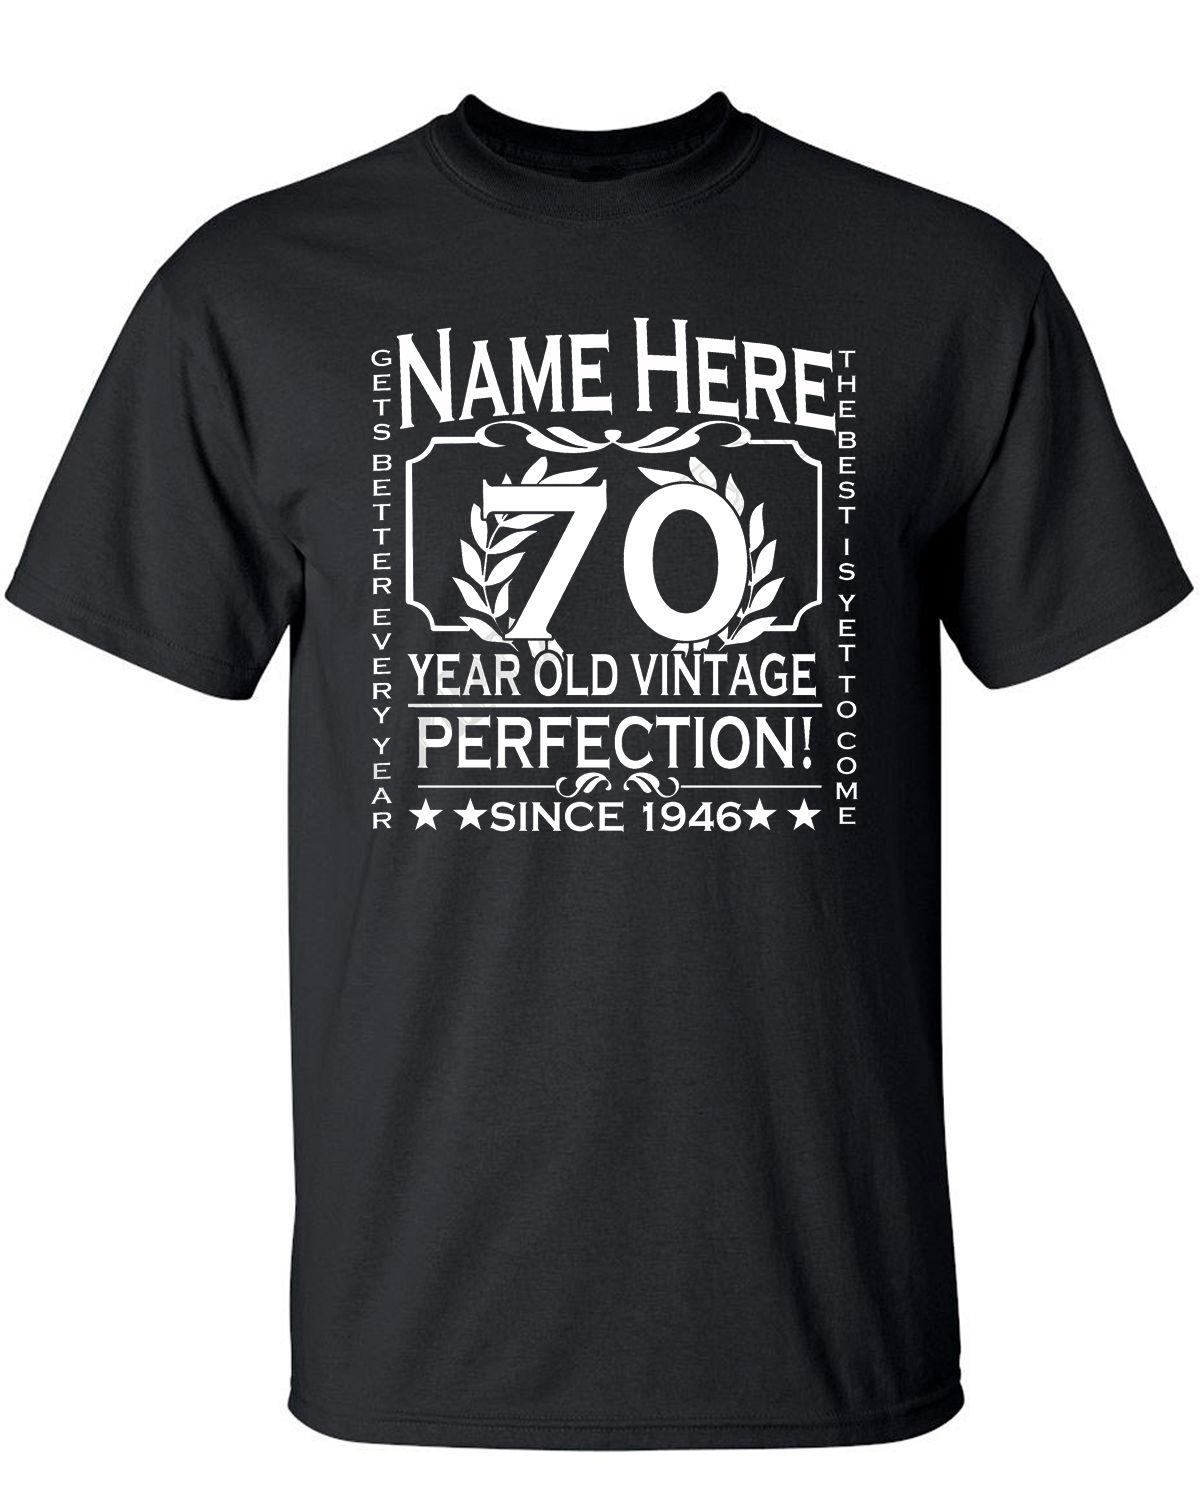 Mens 70th Birthday T Shirt Customised Personalised Add Name Year Age 80th 60th 24 Hour Tee Shirts From Mycarperformance 1101